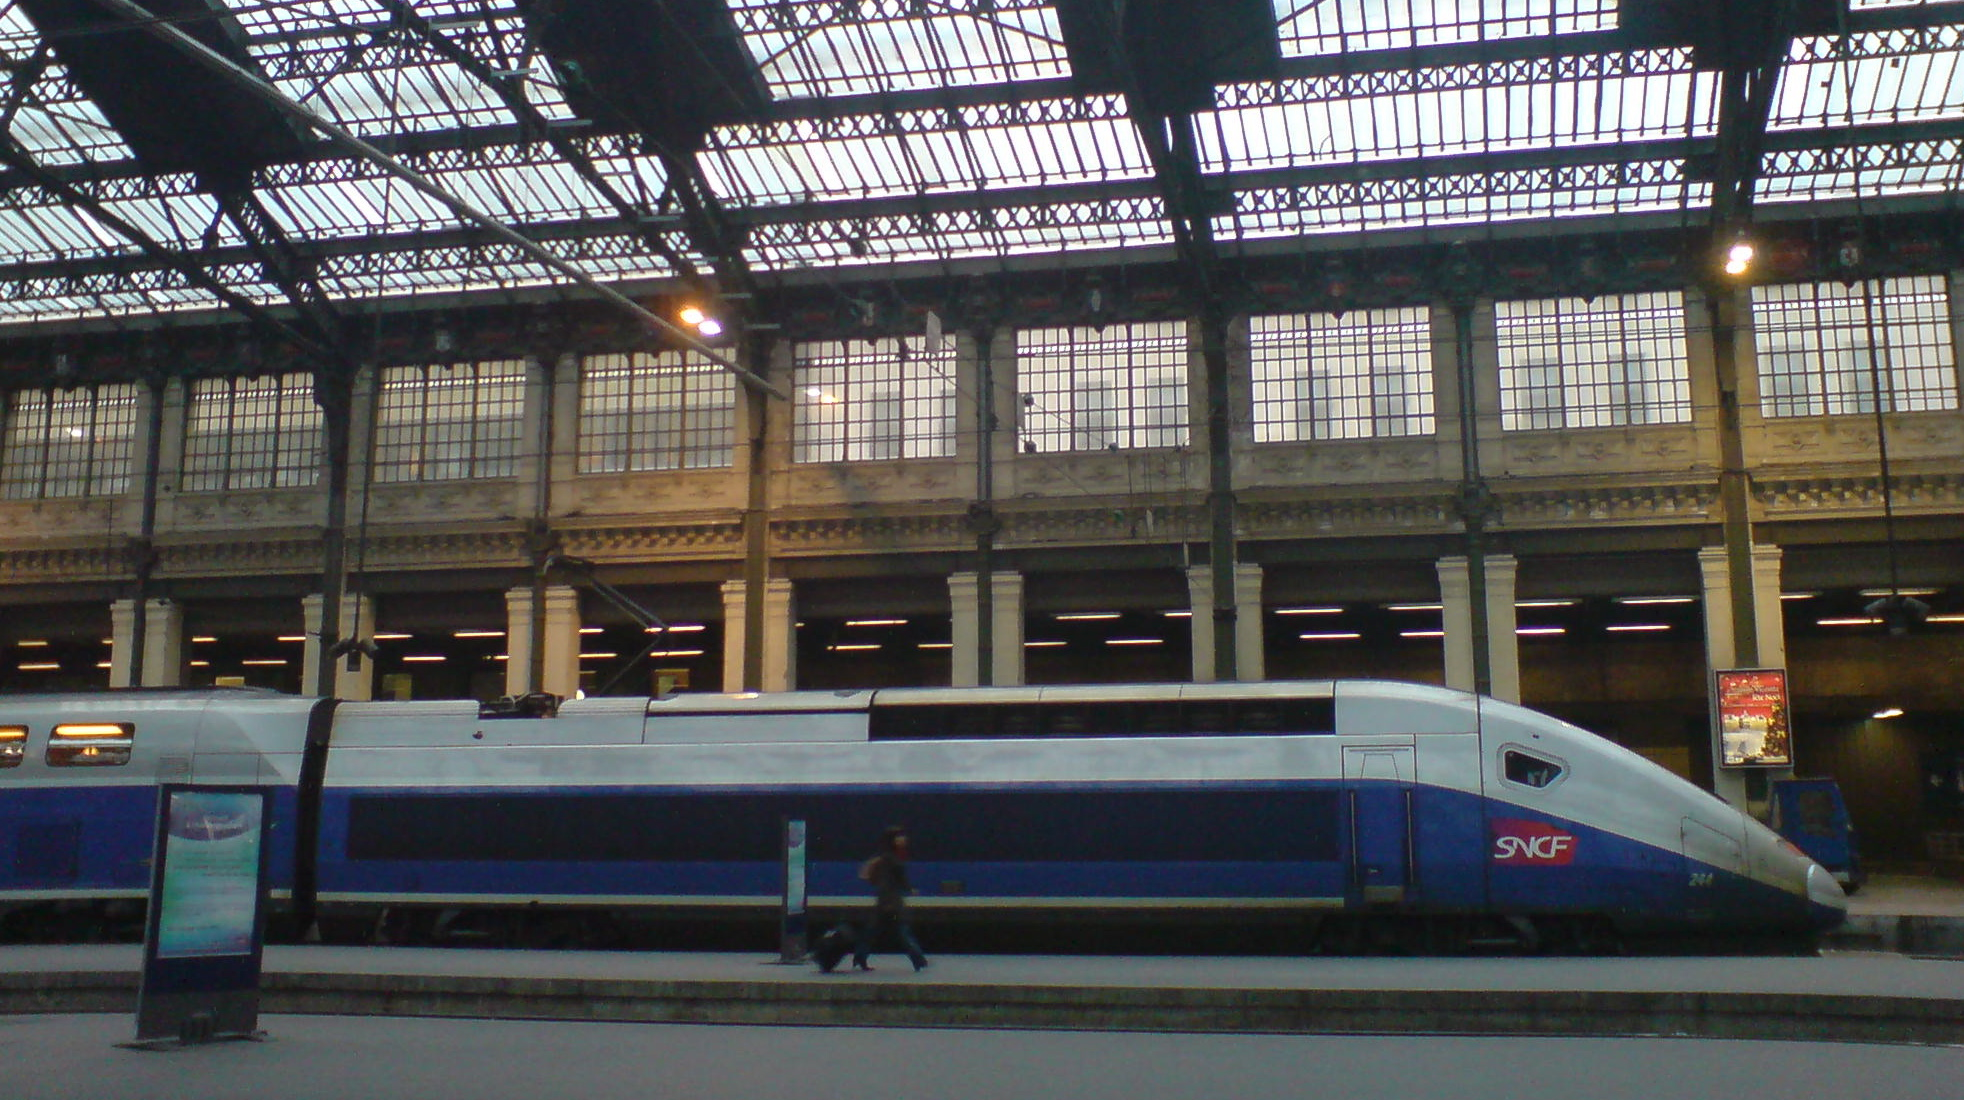 Design Interieur Tgv File Tgv Duplex In Profile Jpg Wikipedia